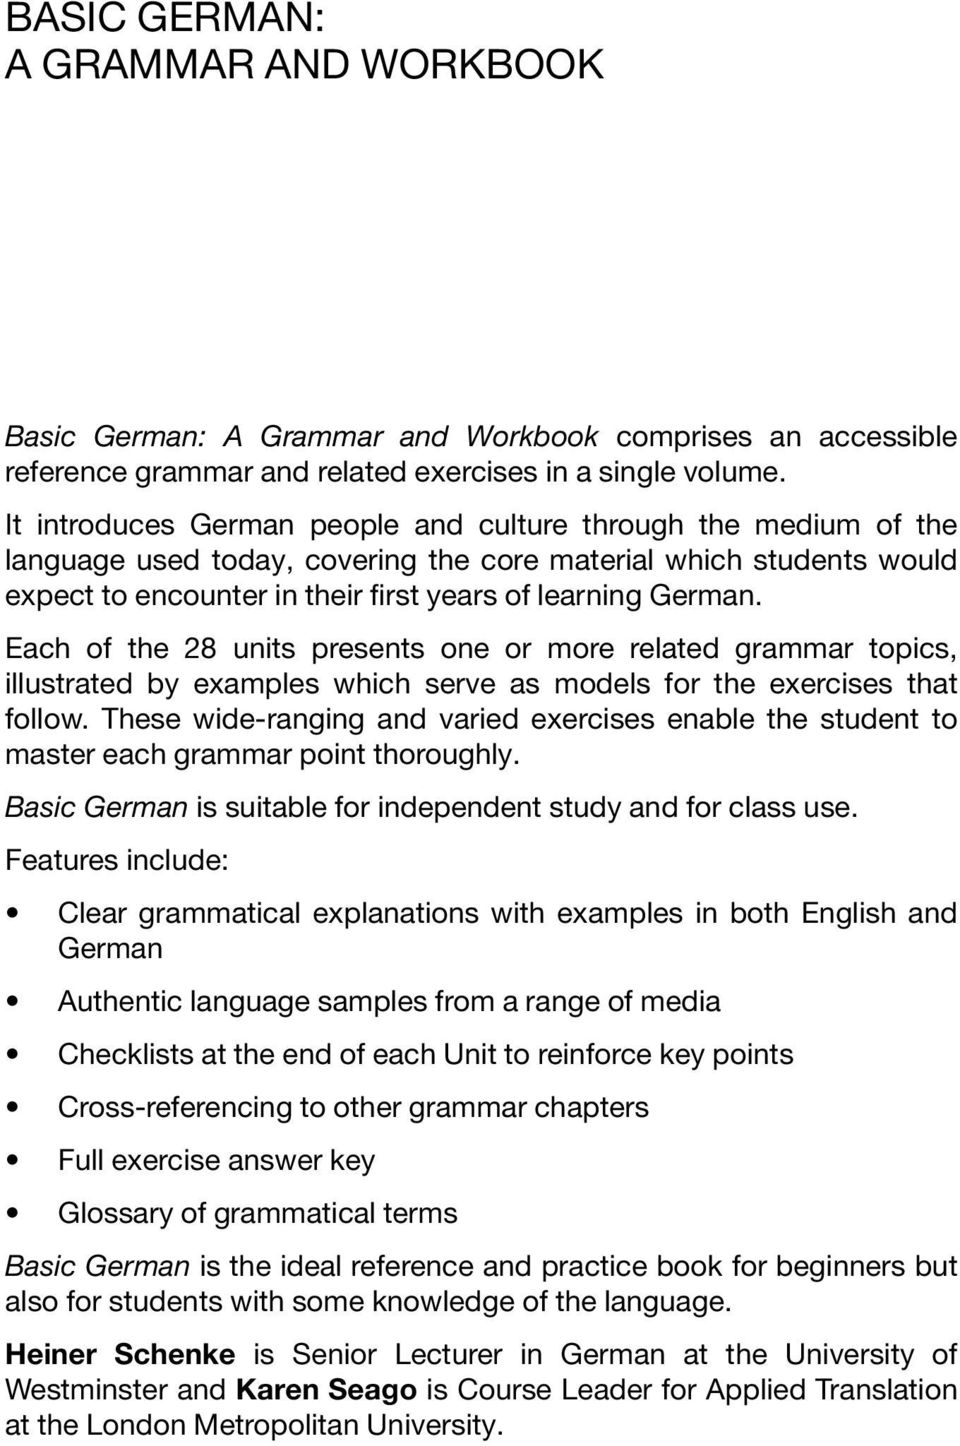 Basic German A Grammar And Workbook Pdf